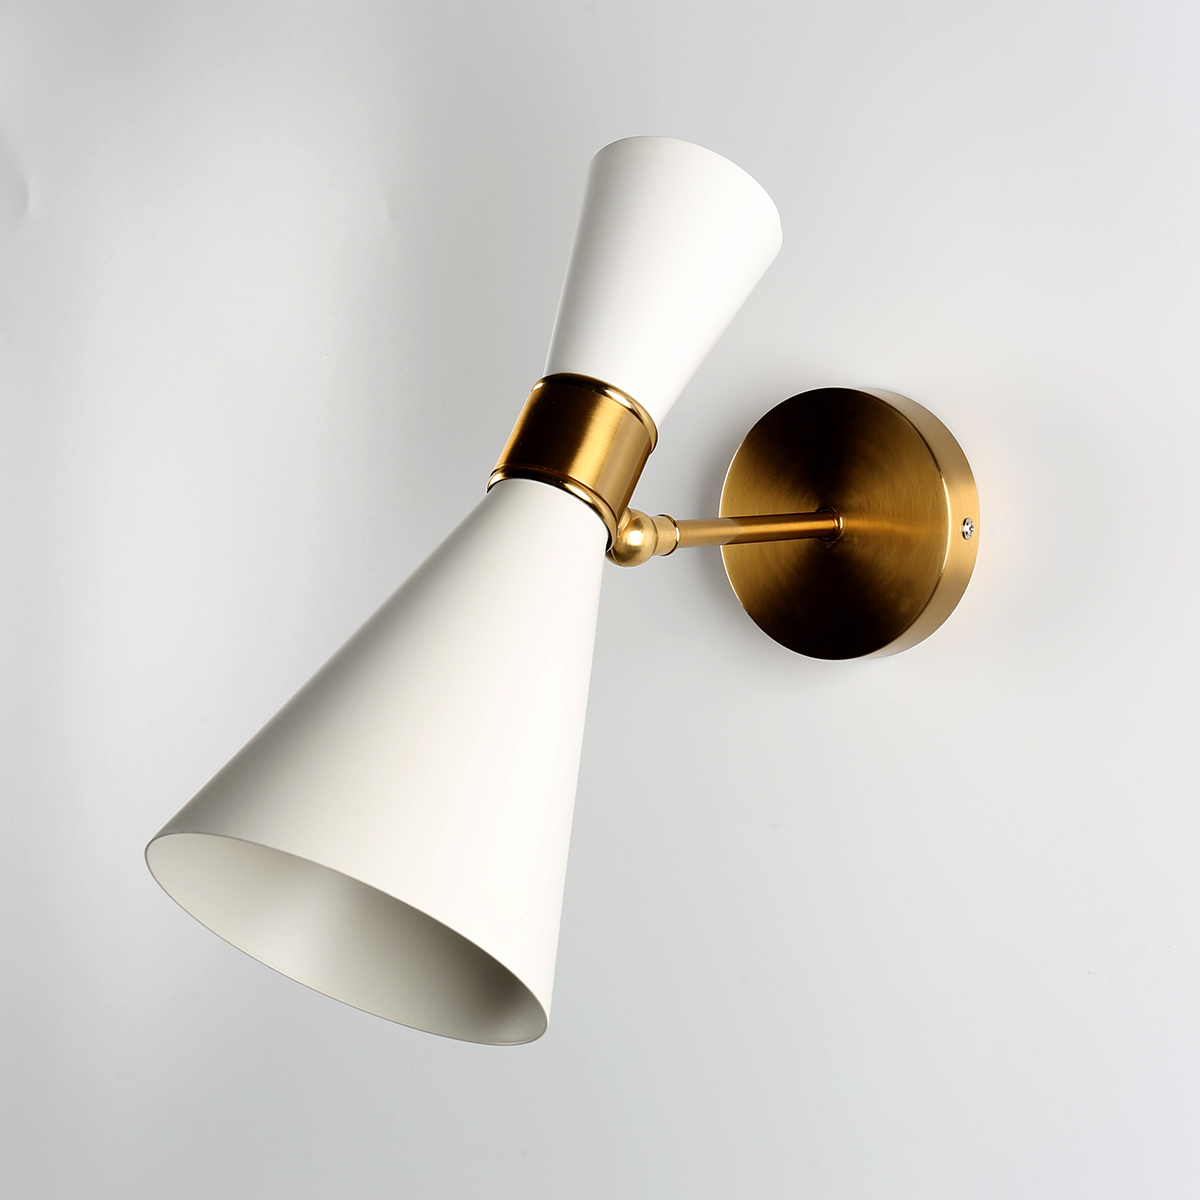 Nordic Golden Modern Wall Lamp - Wall Lamps